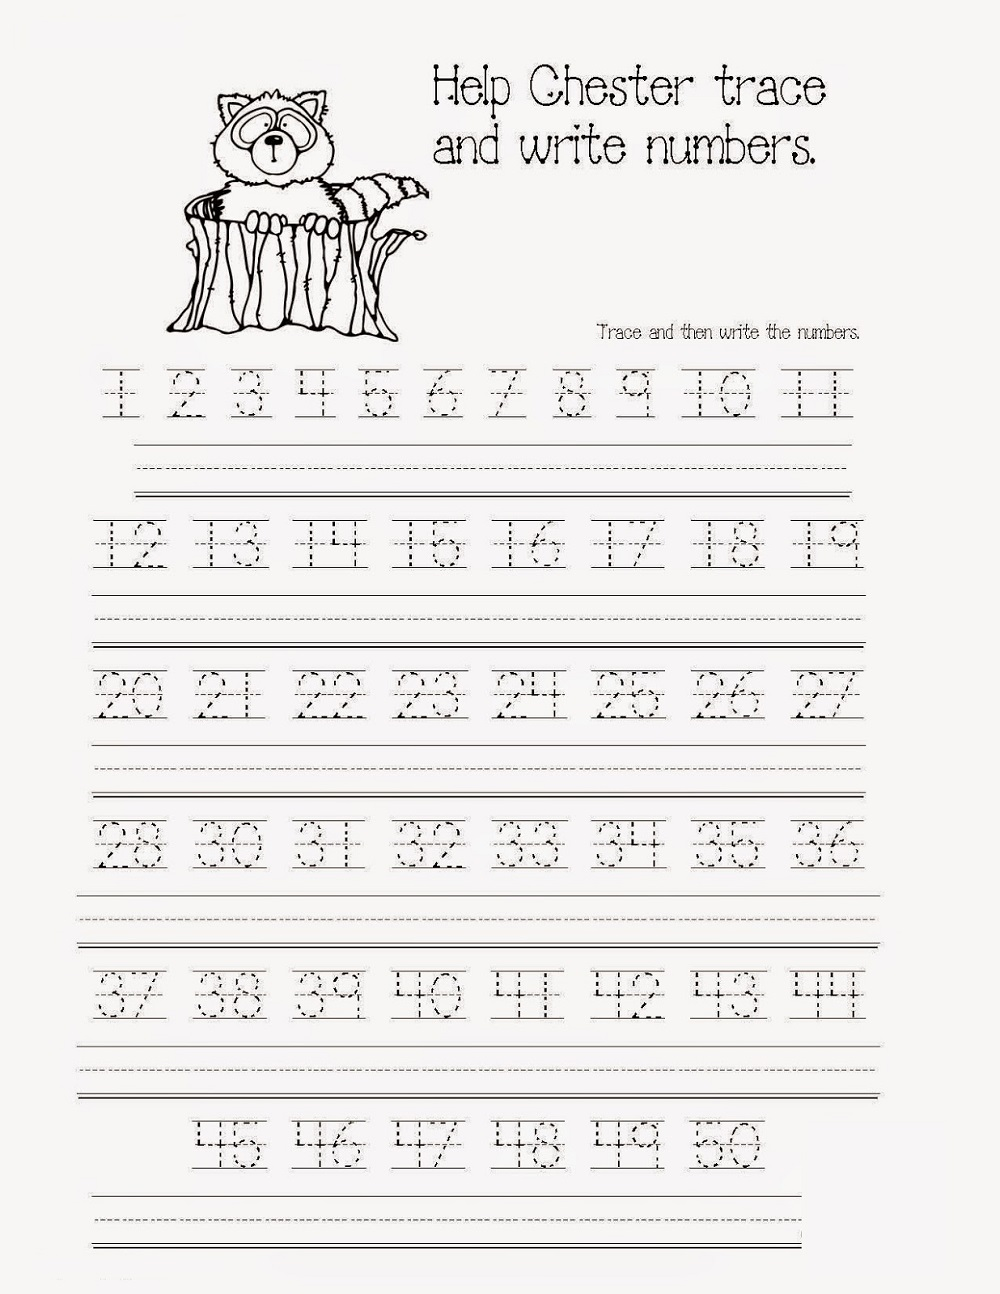 Workbooks traceable alphabet worksheets a-z : Traceable Numbers Worksheets | Activity Shelter